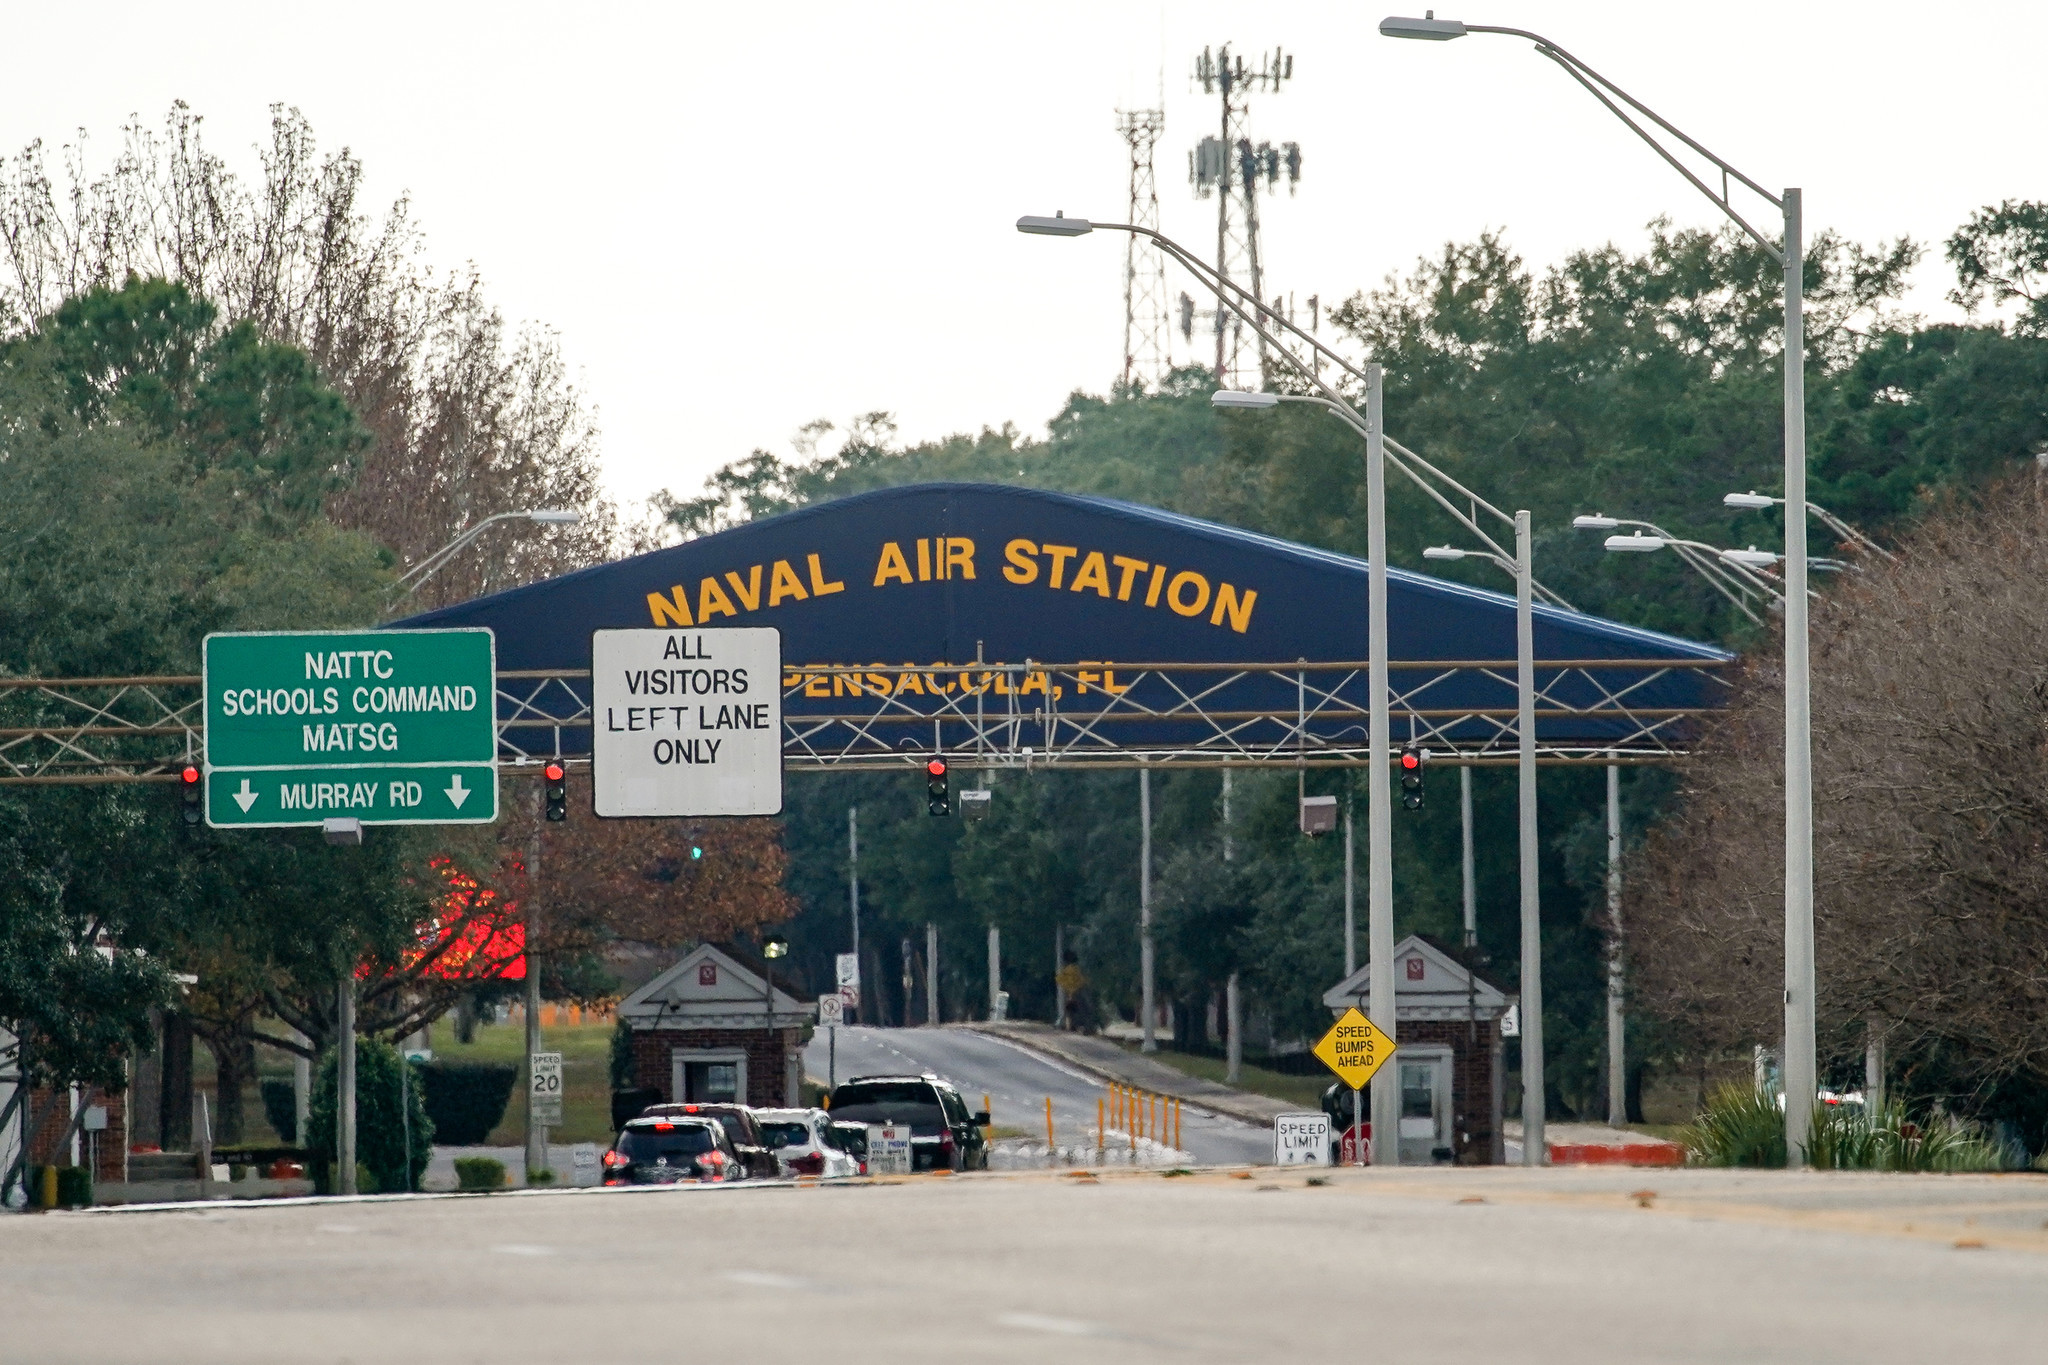 Saudi suspect filmed scene as airman opened fire at Pensacola Navy base in sign of wider terror plot